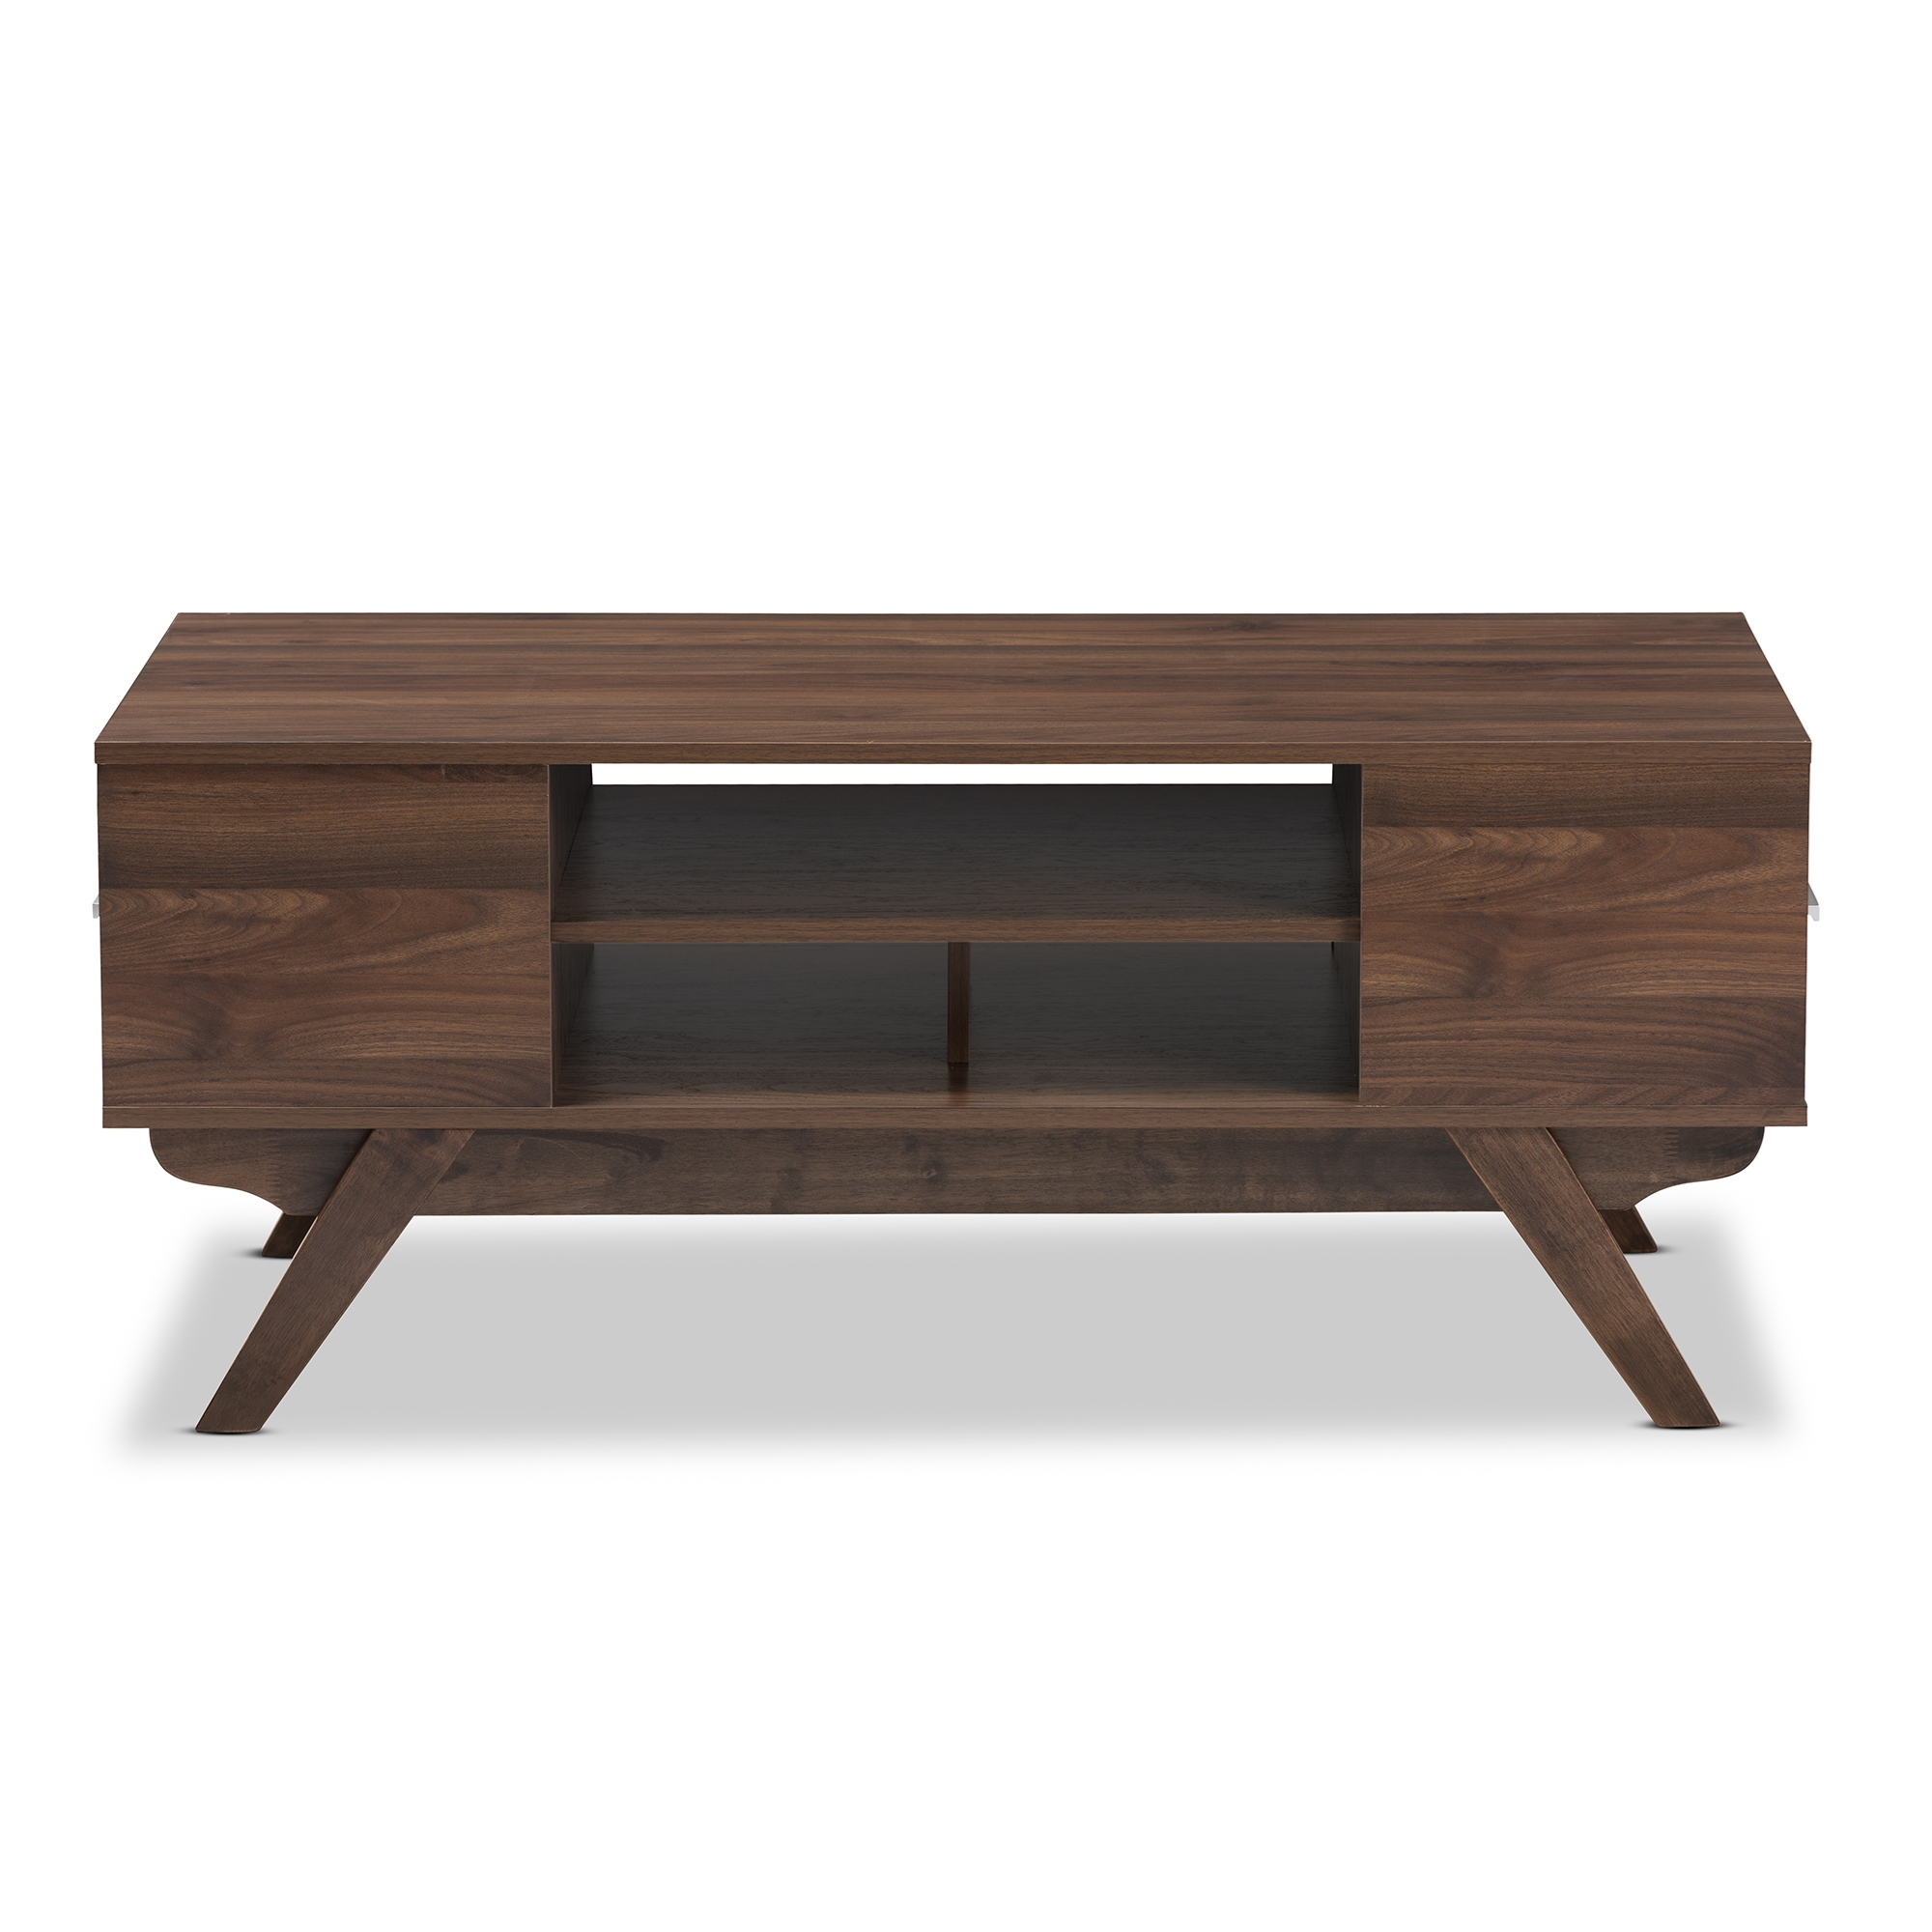 ... Baxton Studio Ashfield Mid Century Modern Walnut Brown Finished Wood  2 Drawer Coffee Table ...